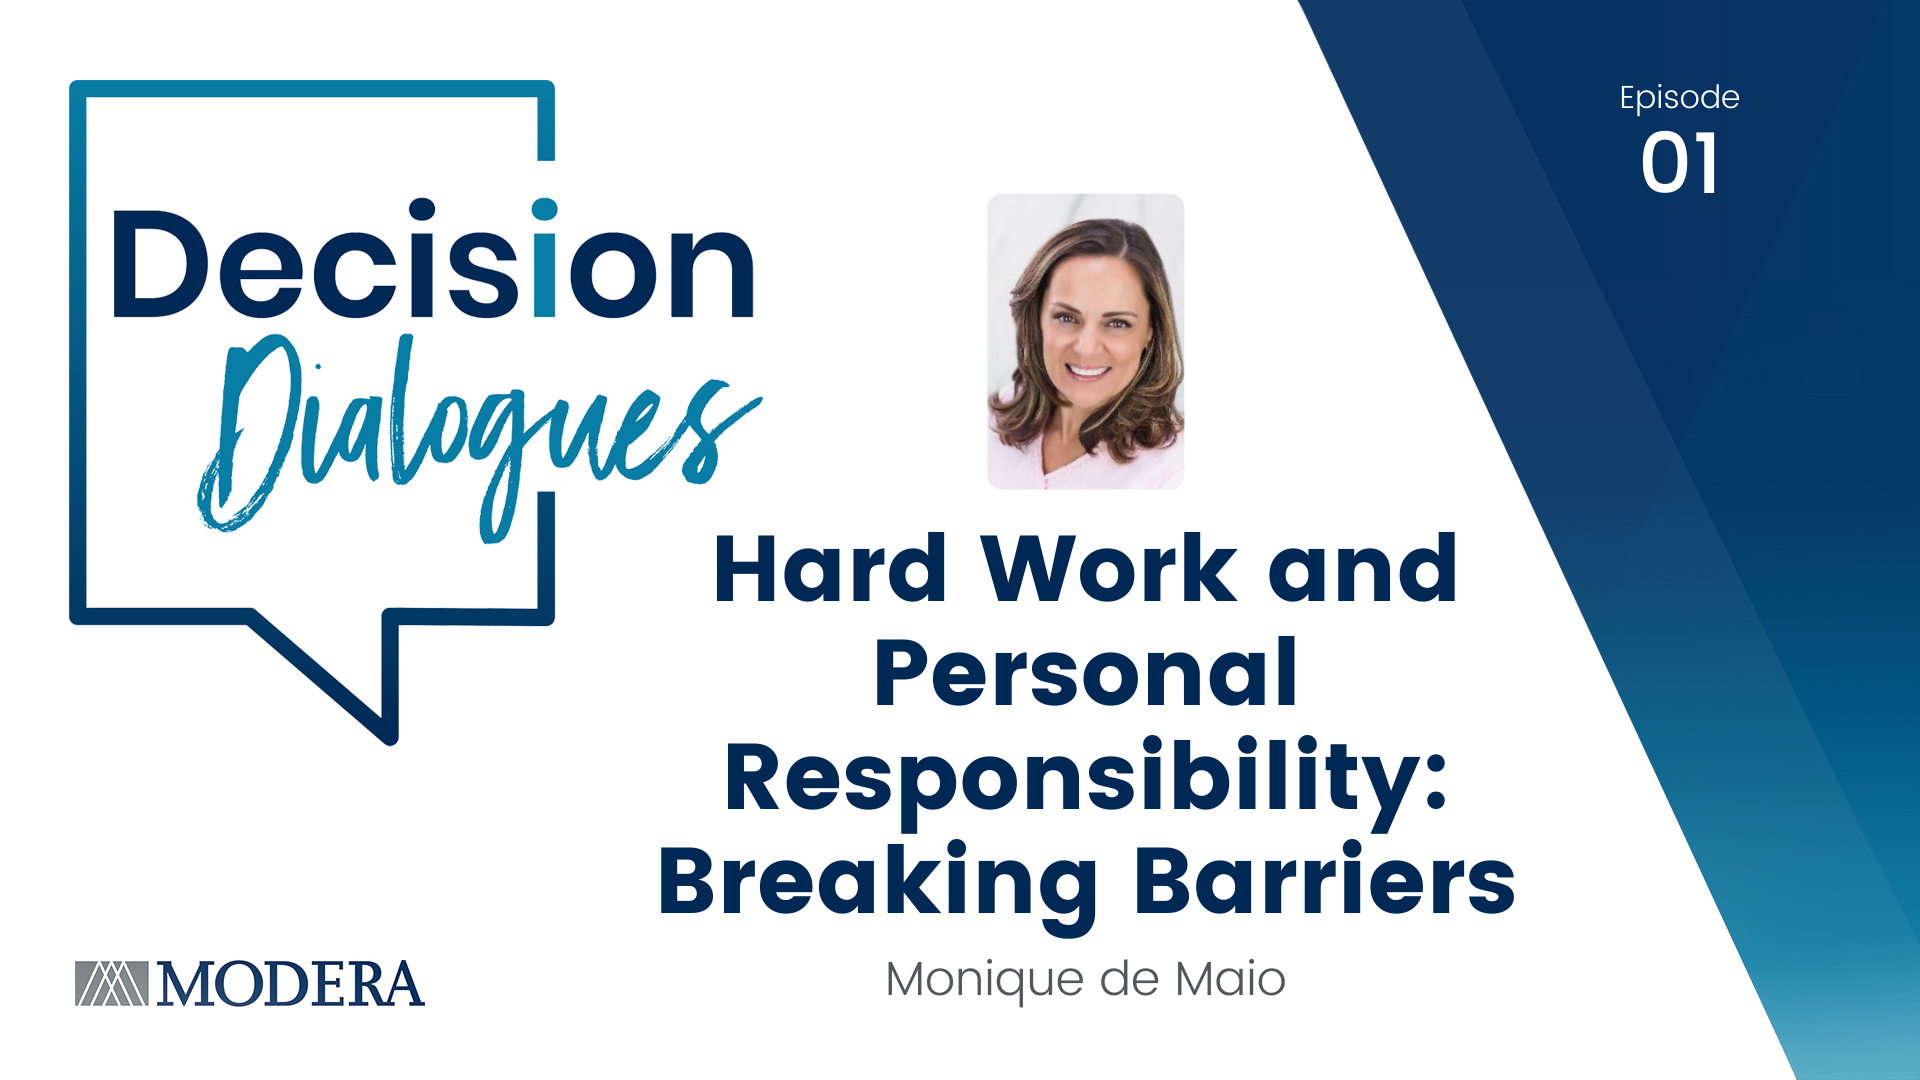 Decision Dialogues - Hard Work and Personal Responsibility: Breaking Barriers - Monique de Maio